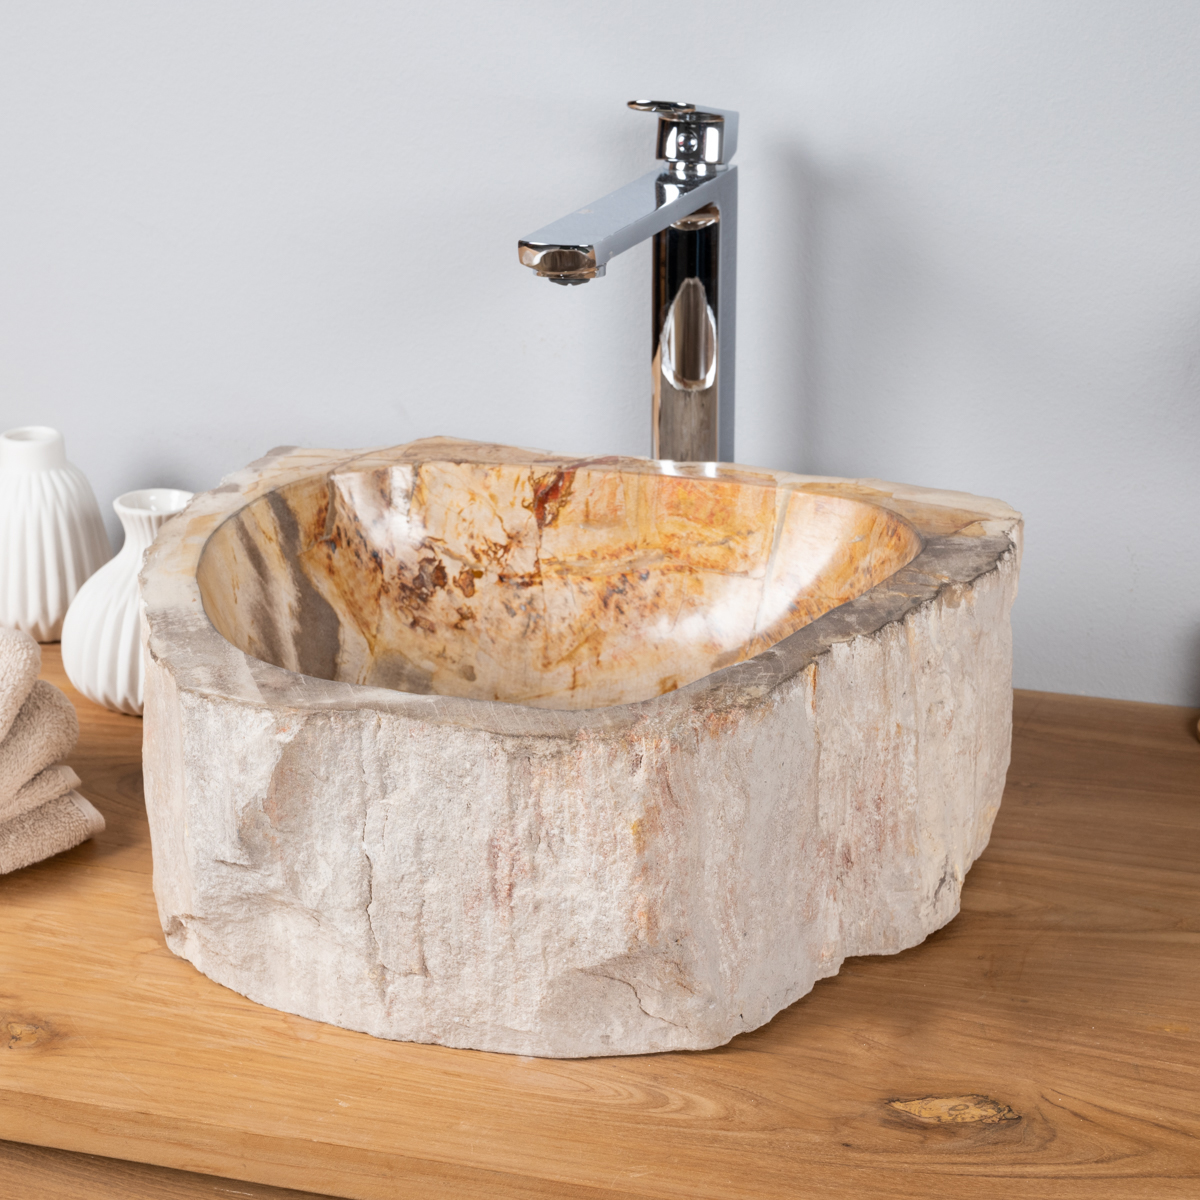 lavabo de salle de bain en bois p trifi fossilis beige l 40 cm. Black Bedroom Furniture Sets. Home Design Ideas